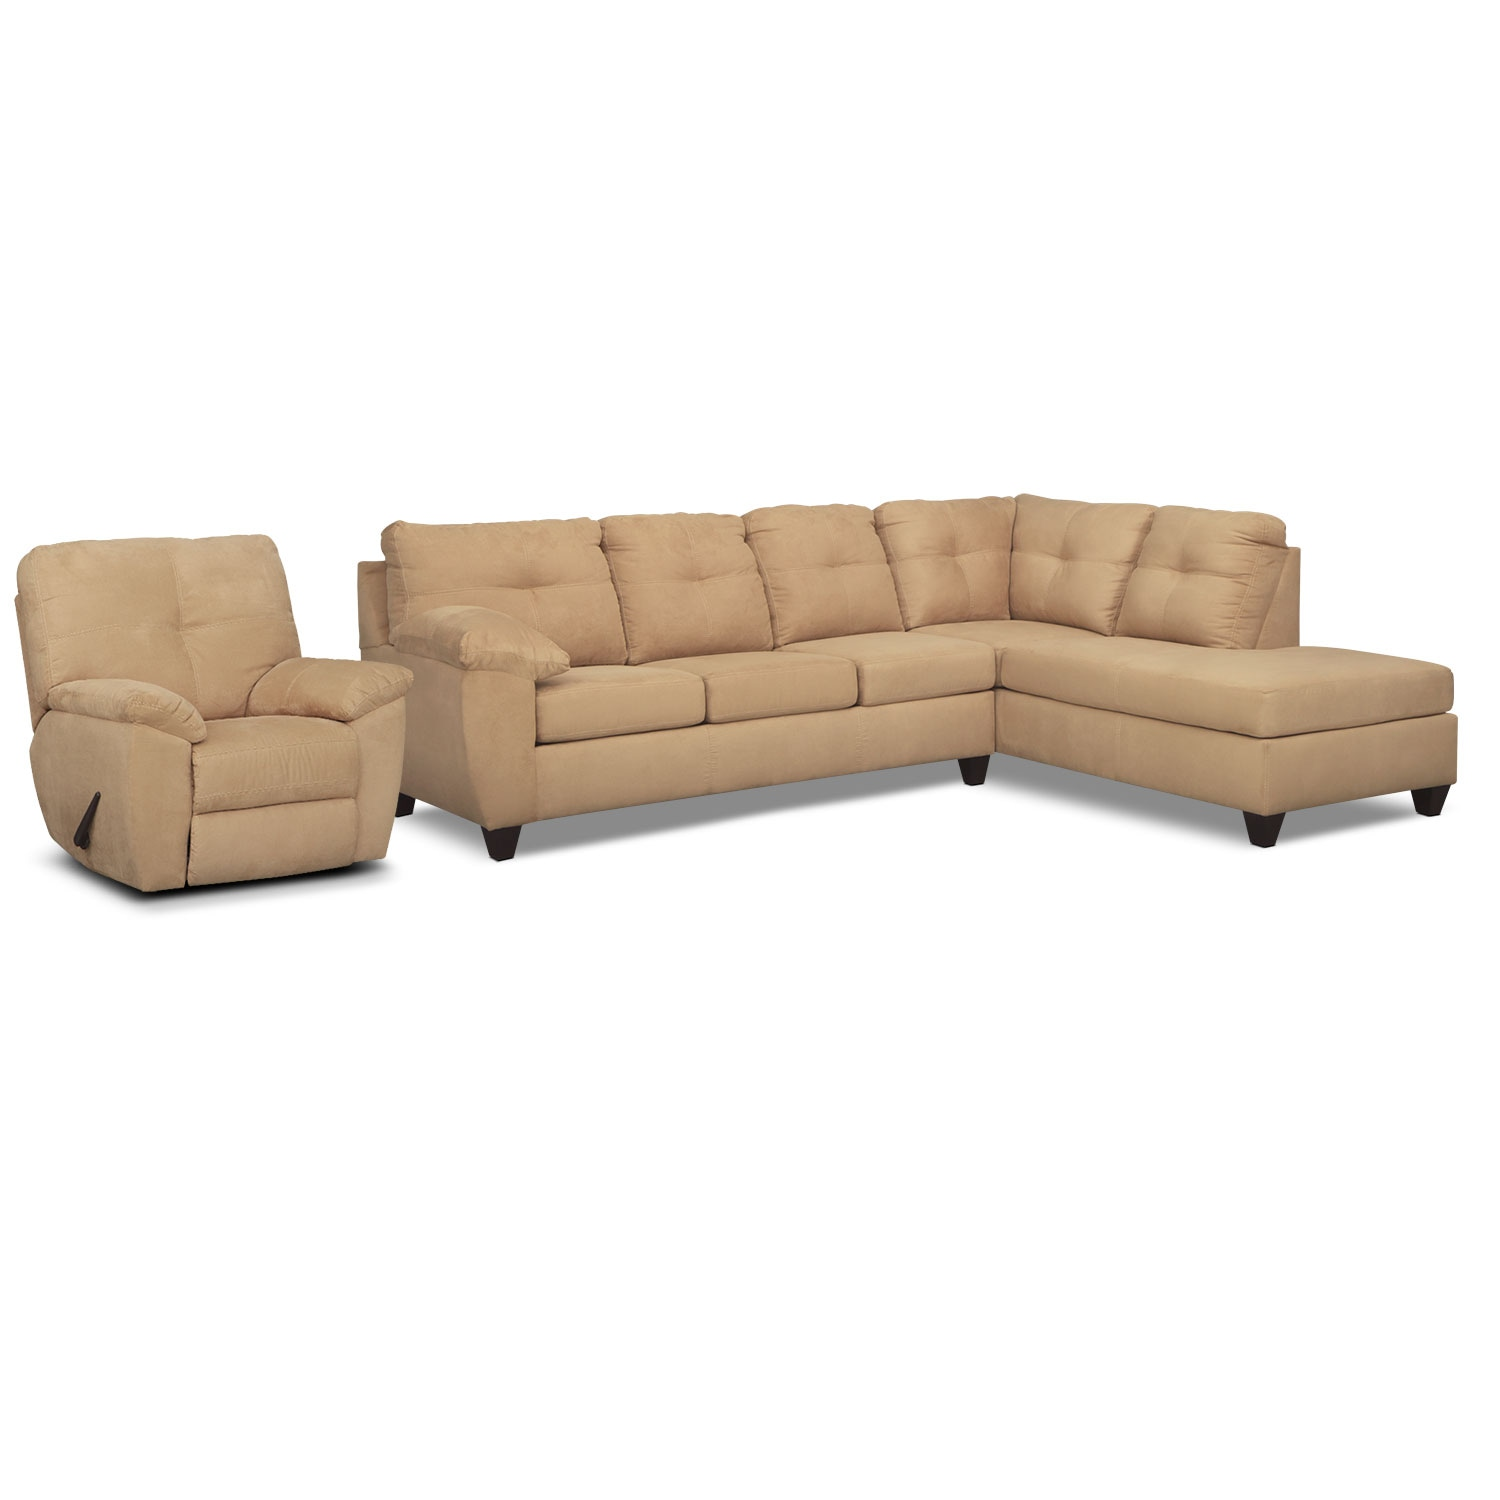 Living Room Furniture - Rialto 2-Piece Sectional with Right-Facing Chaise and Glider Recliner Set - Camel